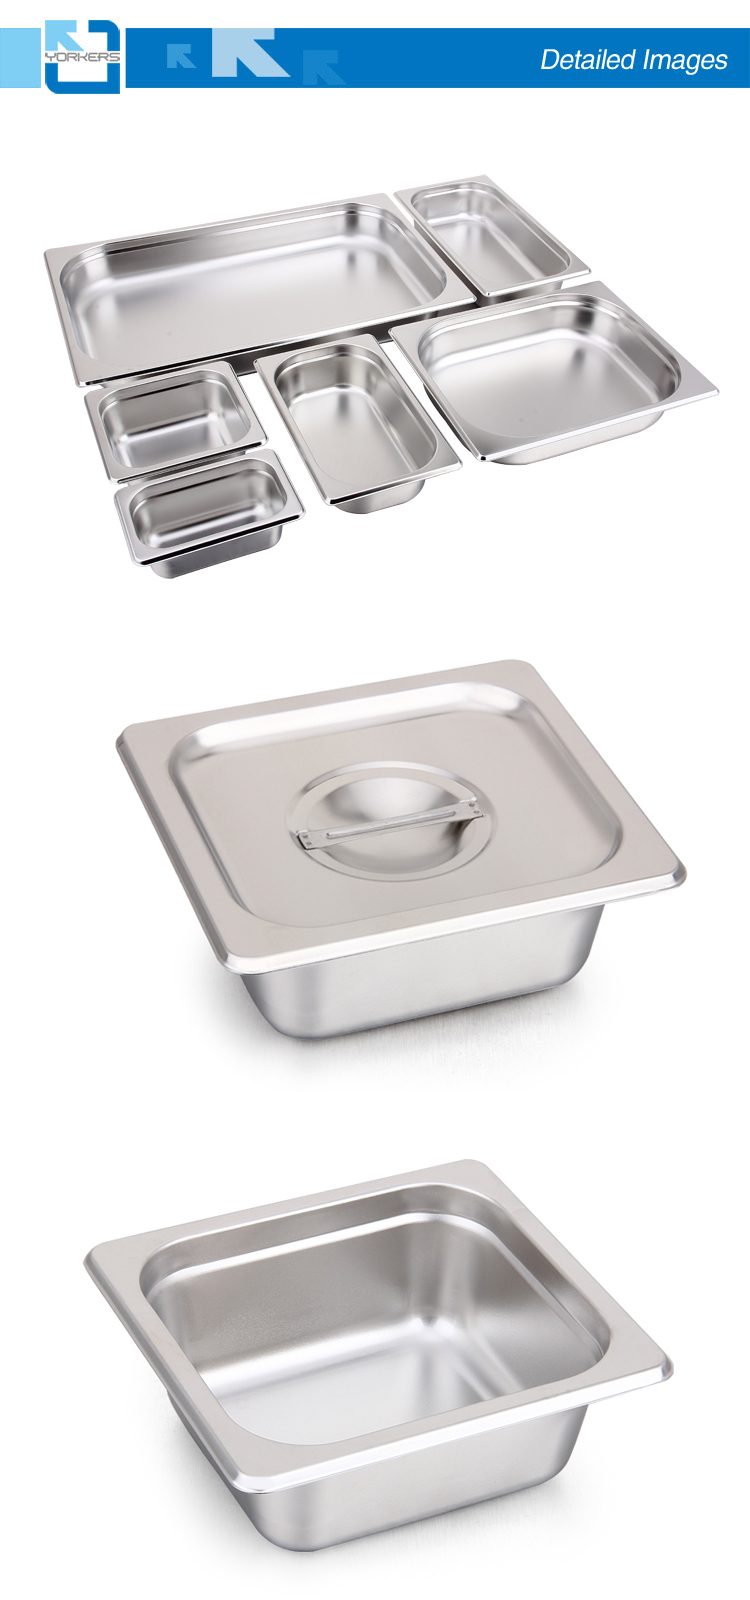 1/6 American Style Stainless Steel Gastronorm Pan